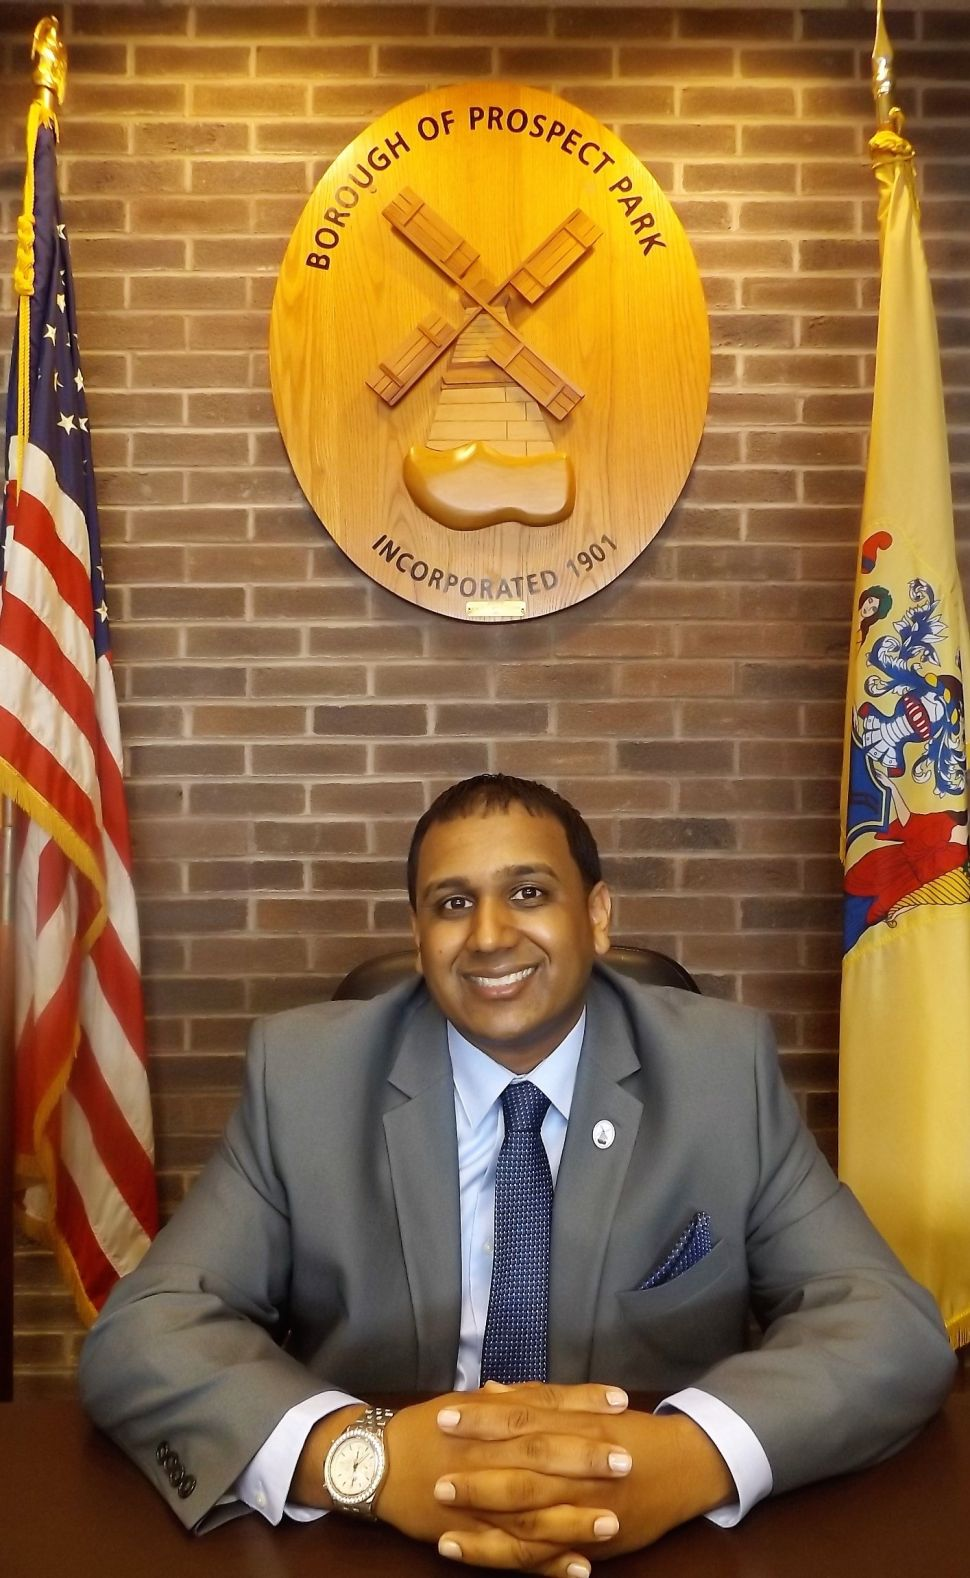 First Indian-American Elected to Prospect Park Council